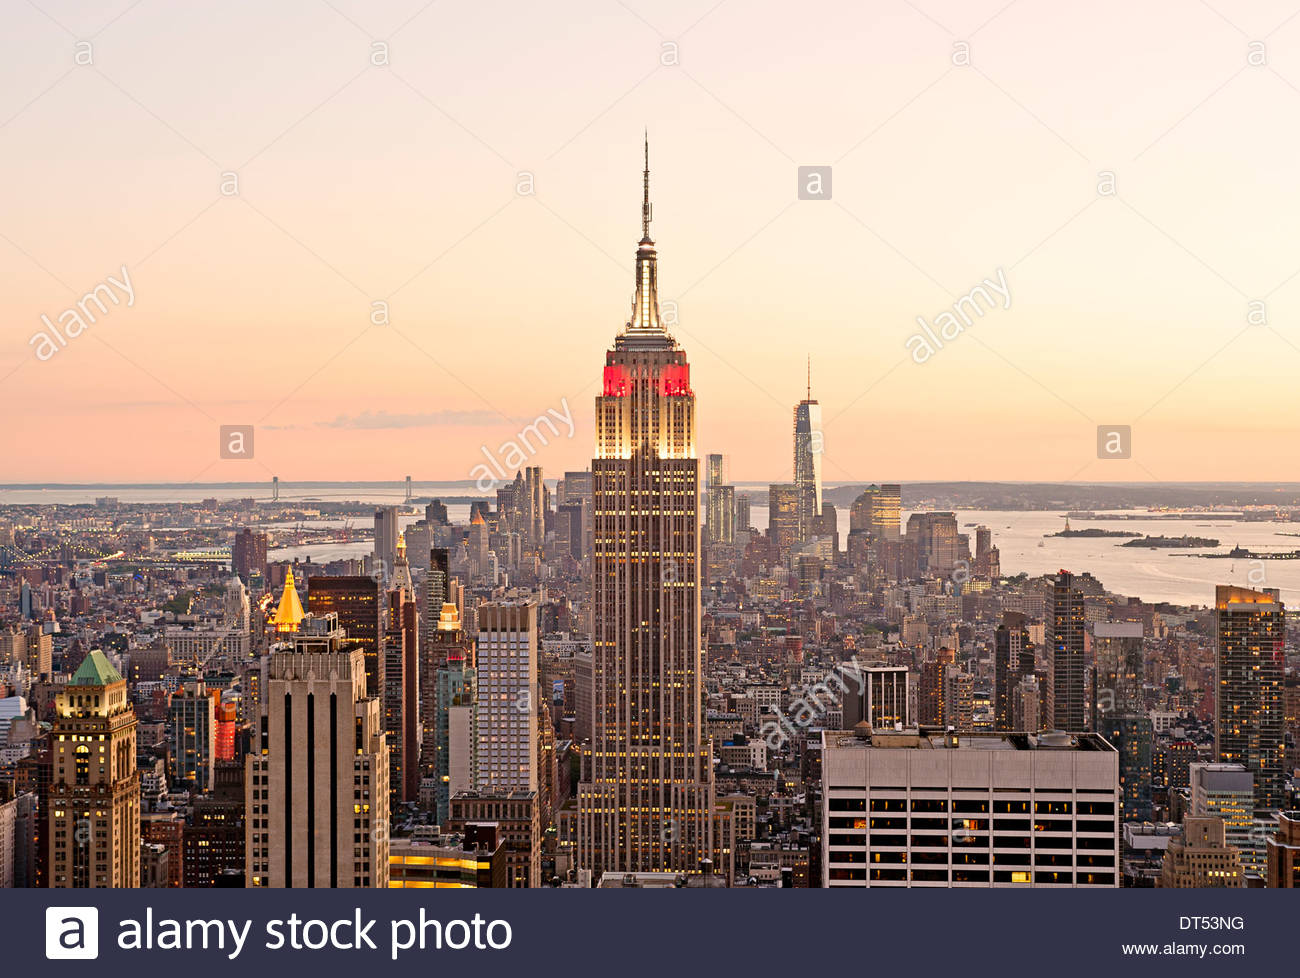 Aerial view of Manhattan skyline with the Empire State Building from Top of the Rock, New York City. Stock Photo